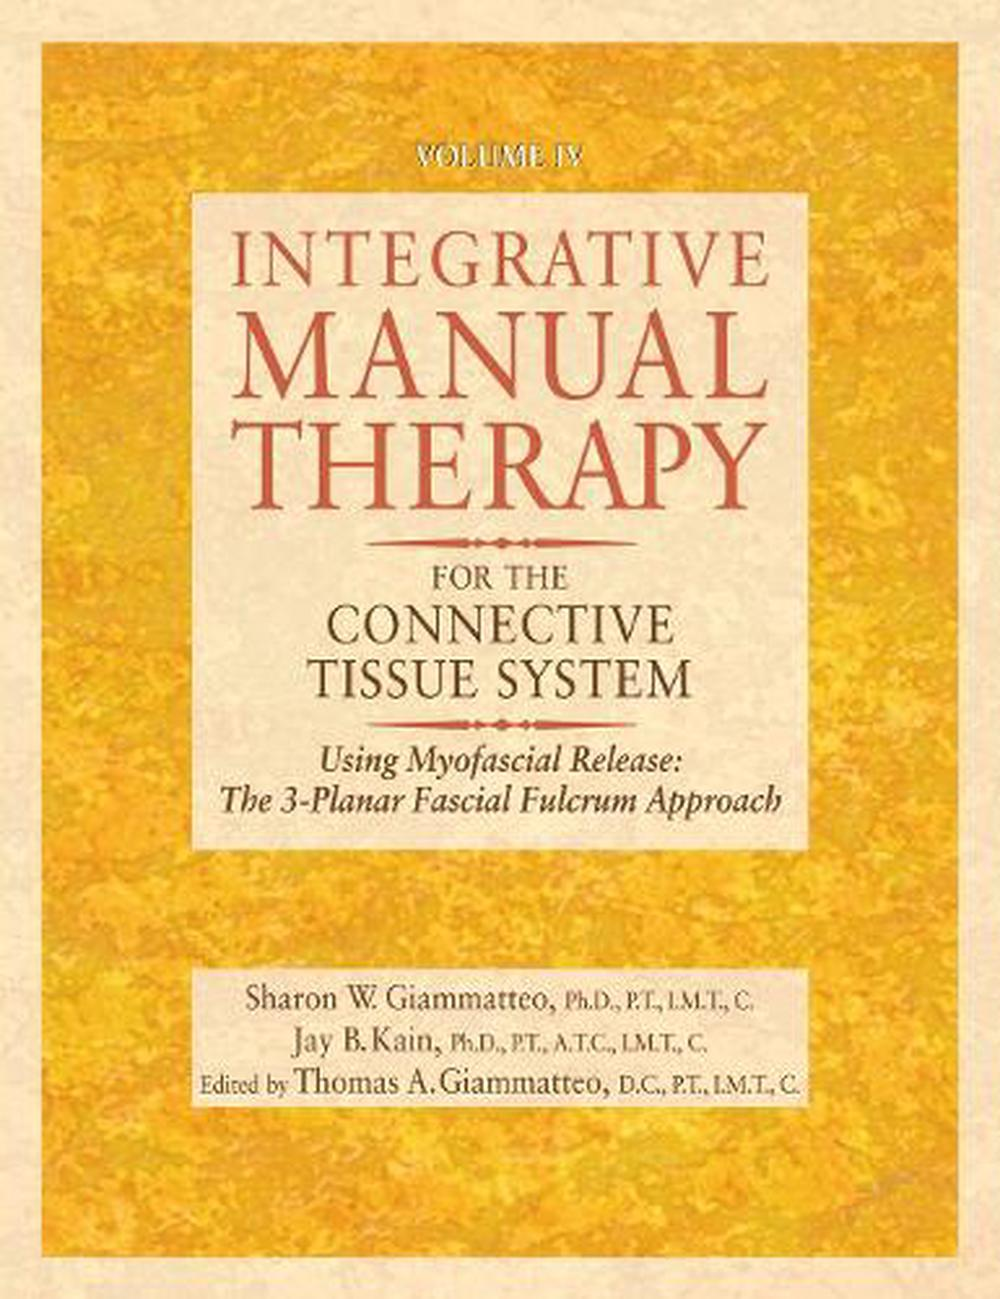 Integrative Manual Therapy for the Connective Tissue System: Using Myofascial Release: The 3-Planar Fascial Fulcrum Approach